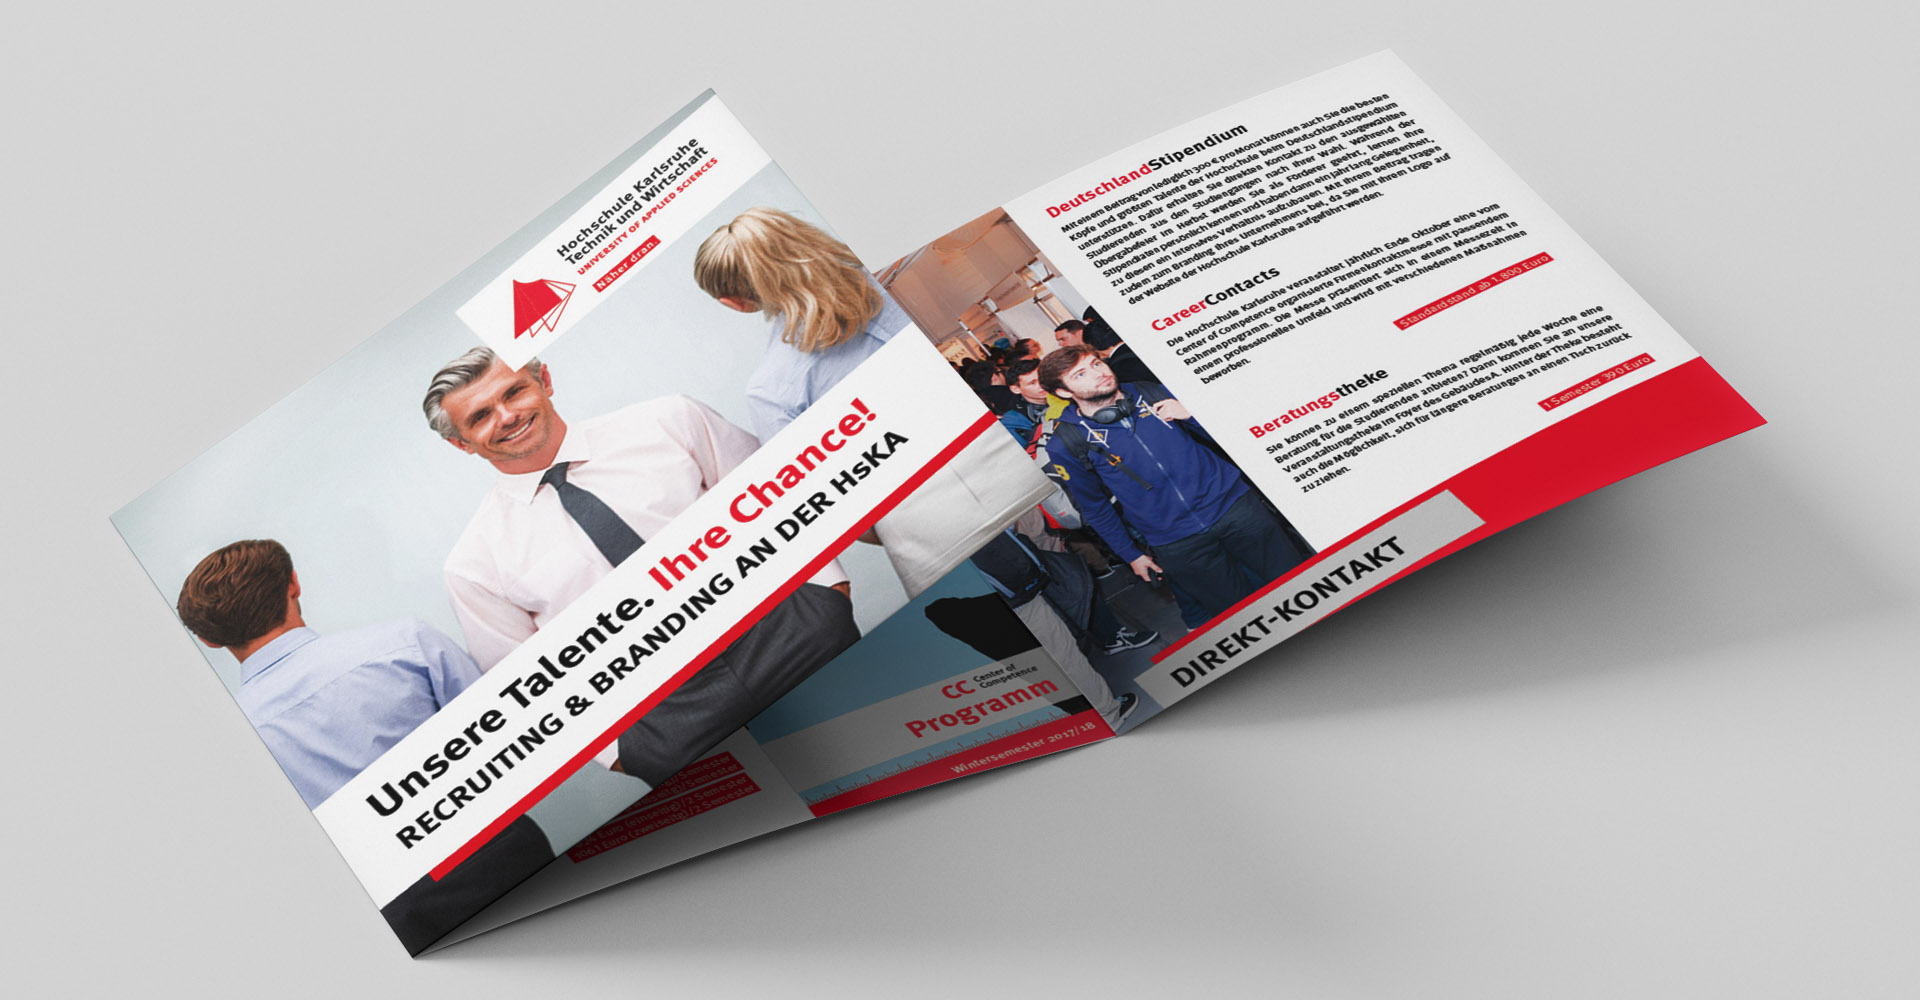 Imageflyer Hochschule Karlsruhe - careercontacts